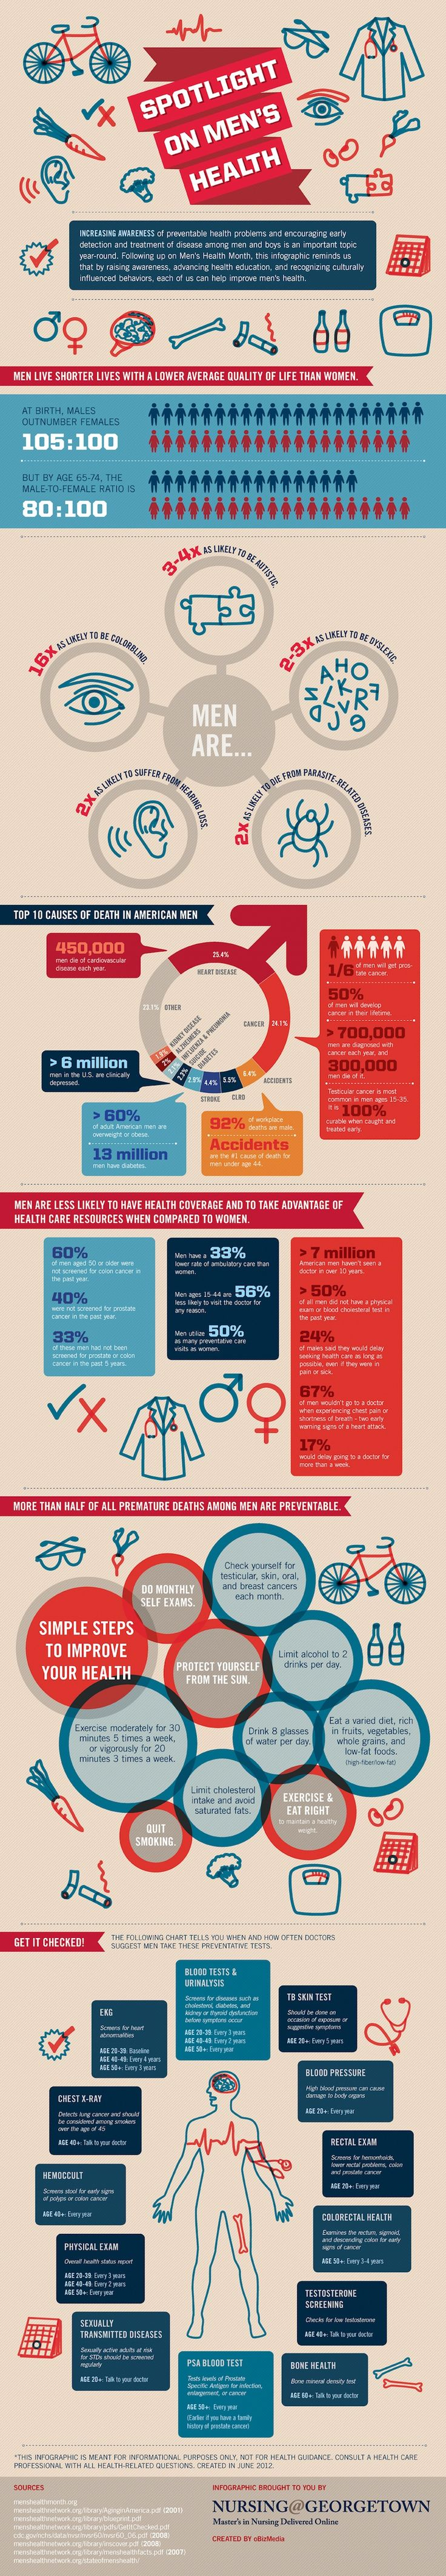 Spotlight on Men's Health #Infographic  Like the colours, graphics around the data